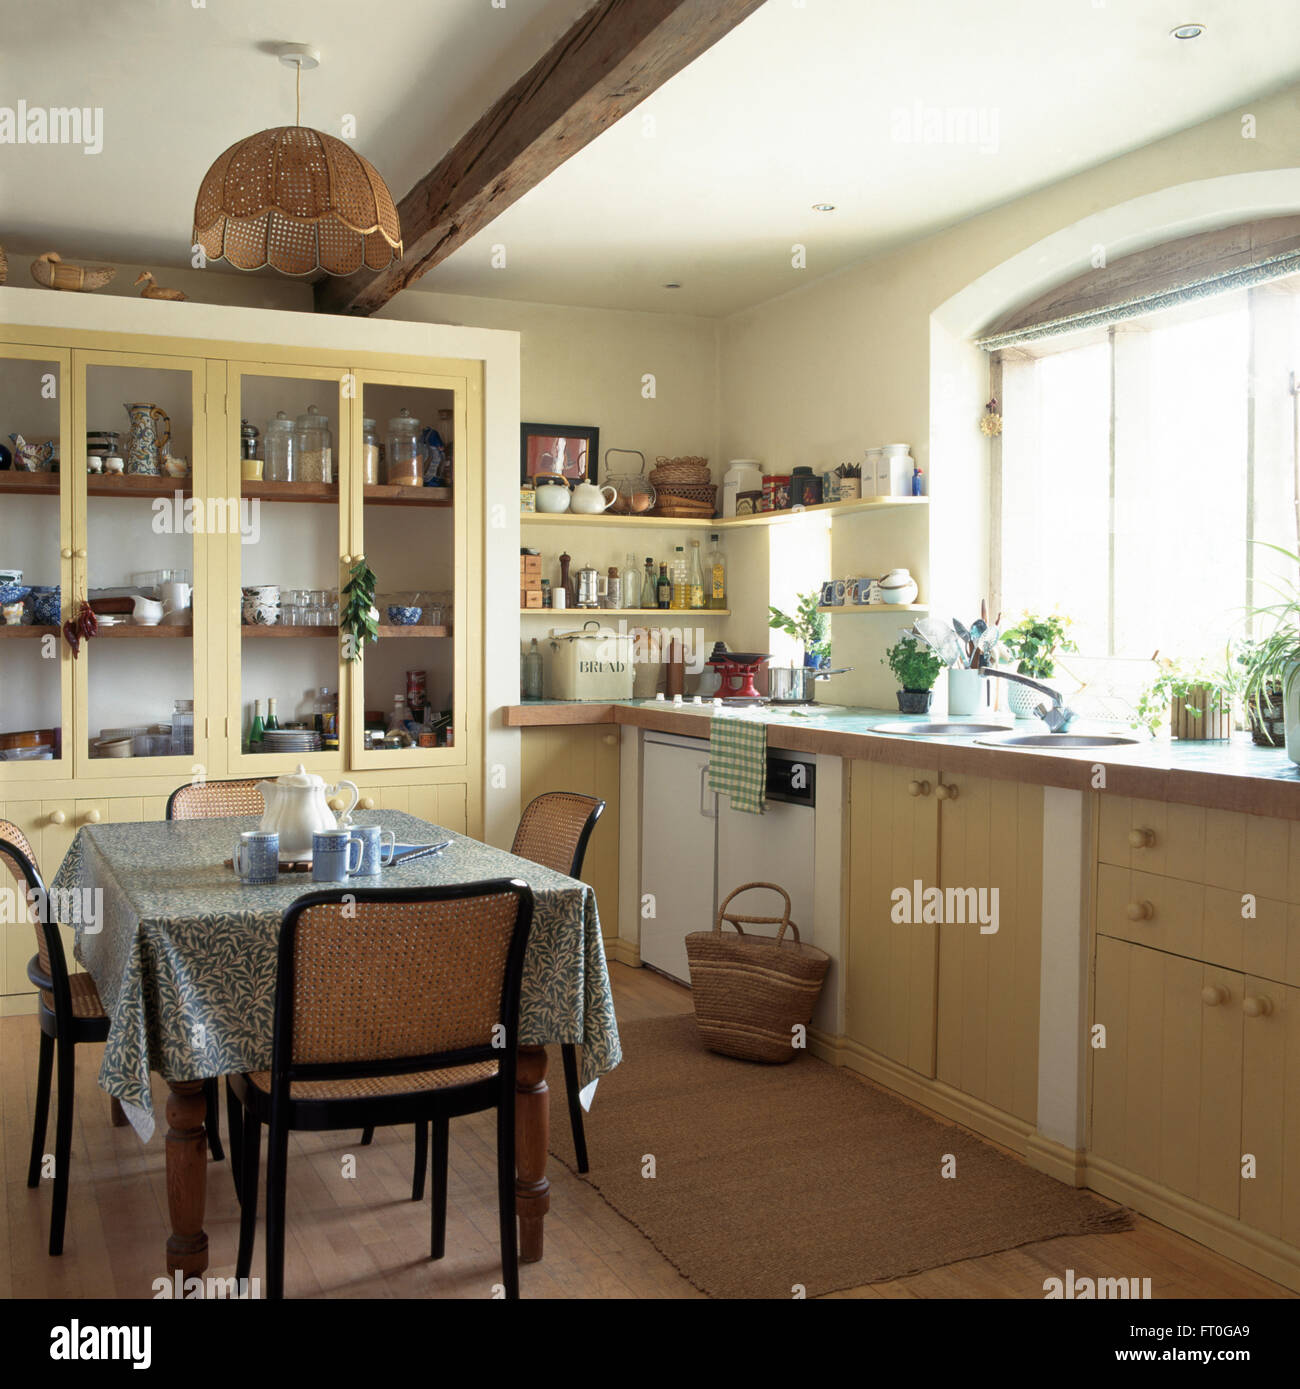 country kitchens stock photos country kitchens stock images alamy